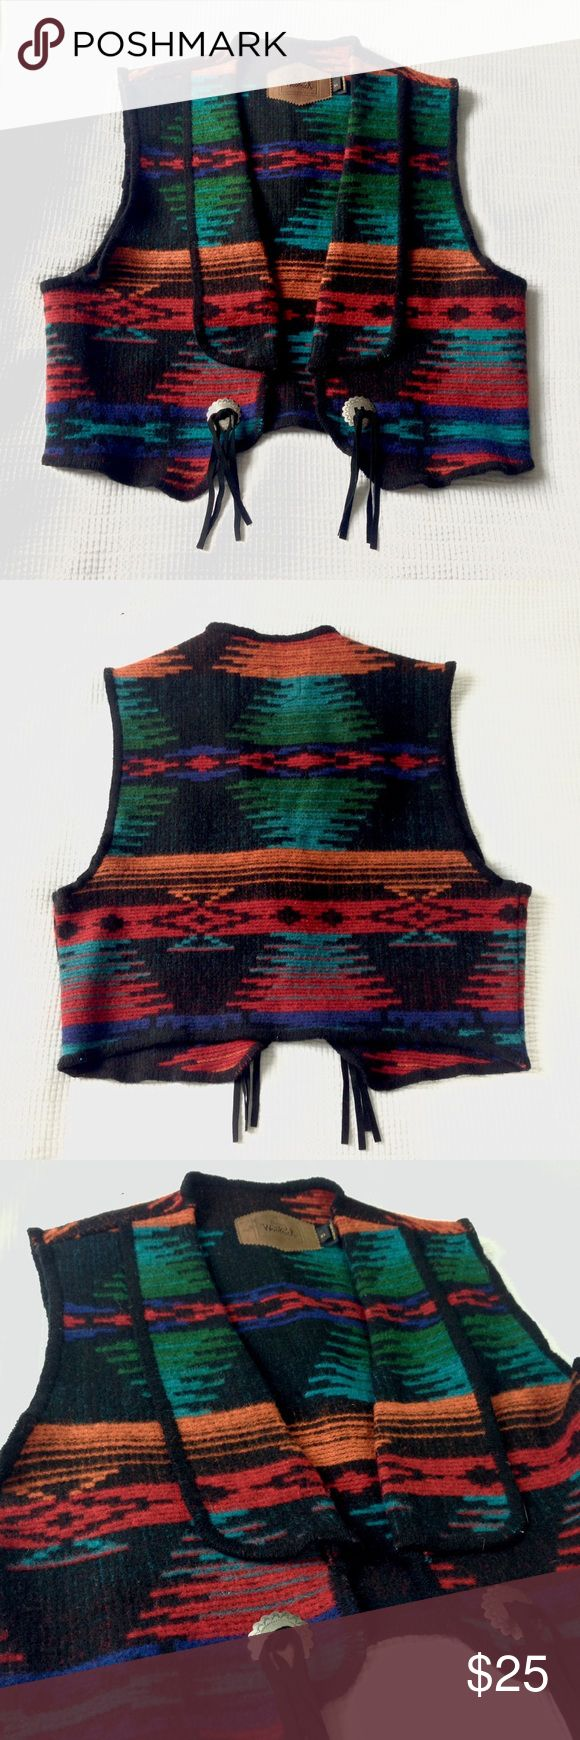 Woolrich Vintage Southwest Aztec Vest Woolrich Vintage Southwest Aztec Vest. Blended wool in vibrant ikat pattern in red, orange, green, blue, and teal on black background. Embellished silver button with black leather tassel decoration on front. Looks great with black pants and boots. This is a beautiful statement piece!   ---> Preowned in good condition. Slight wear as seen in photos. No holes, stains, or snags. Woolrich Jackets & Coats Vests